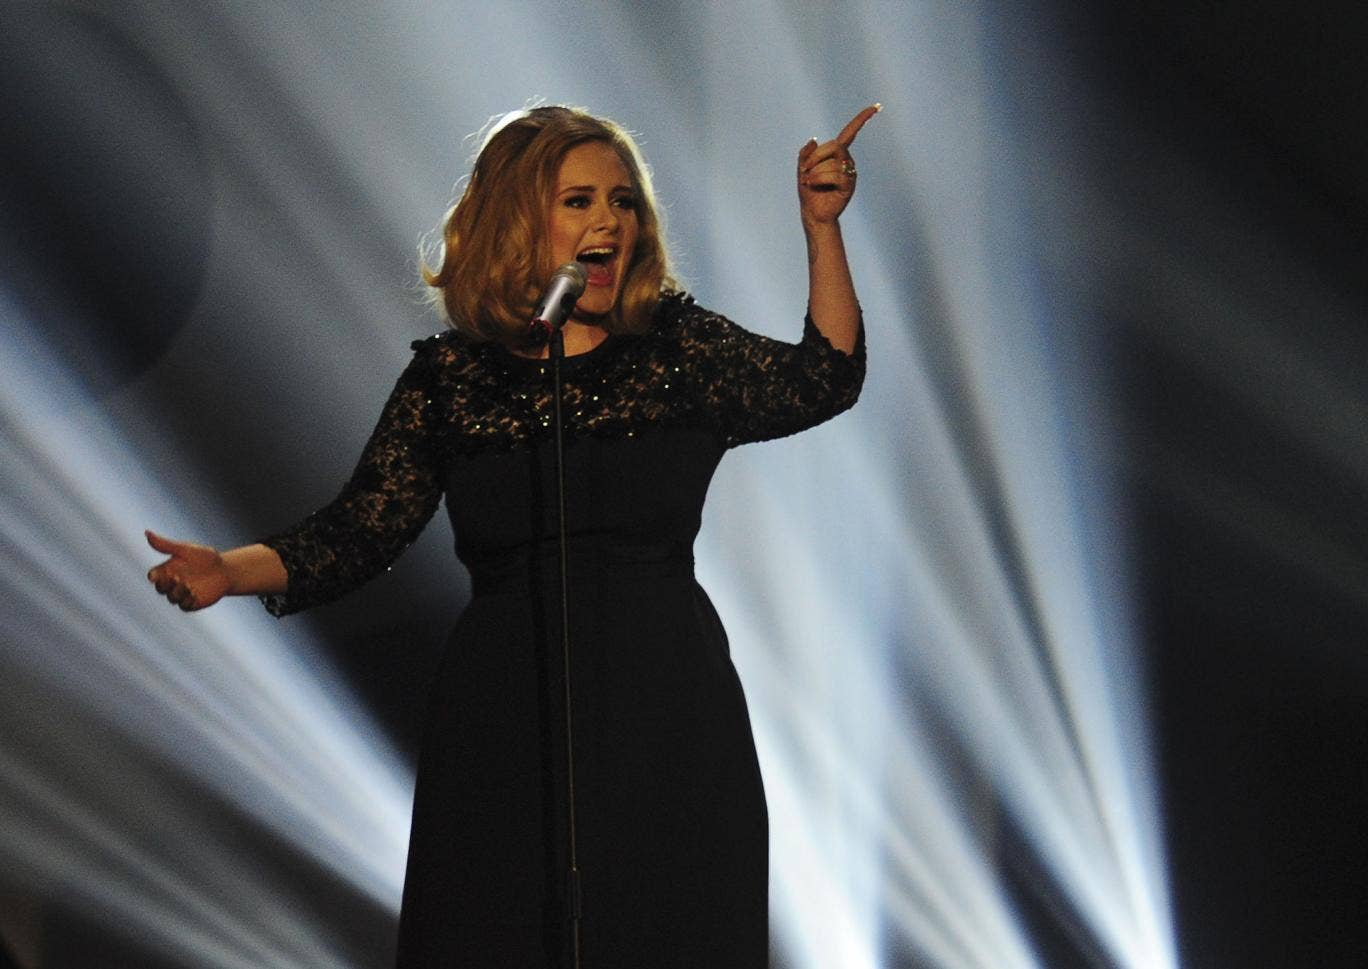 Adele performs onstage during the 2011 MTV Video Music Awards at Nokia Theatre L.A